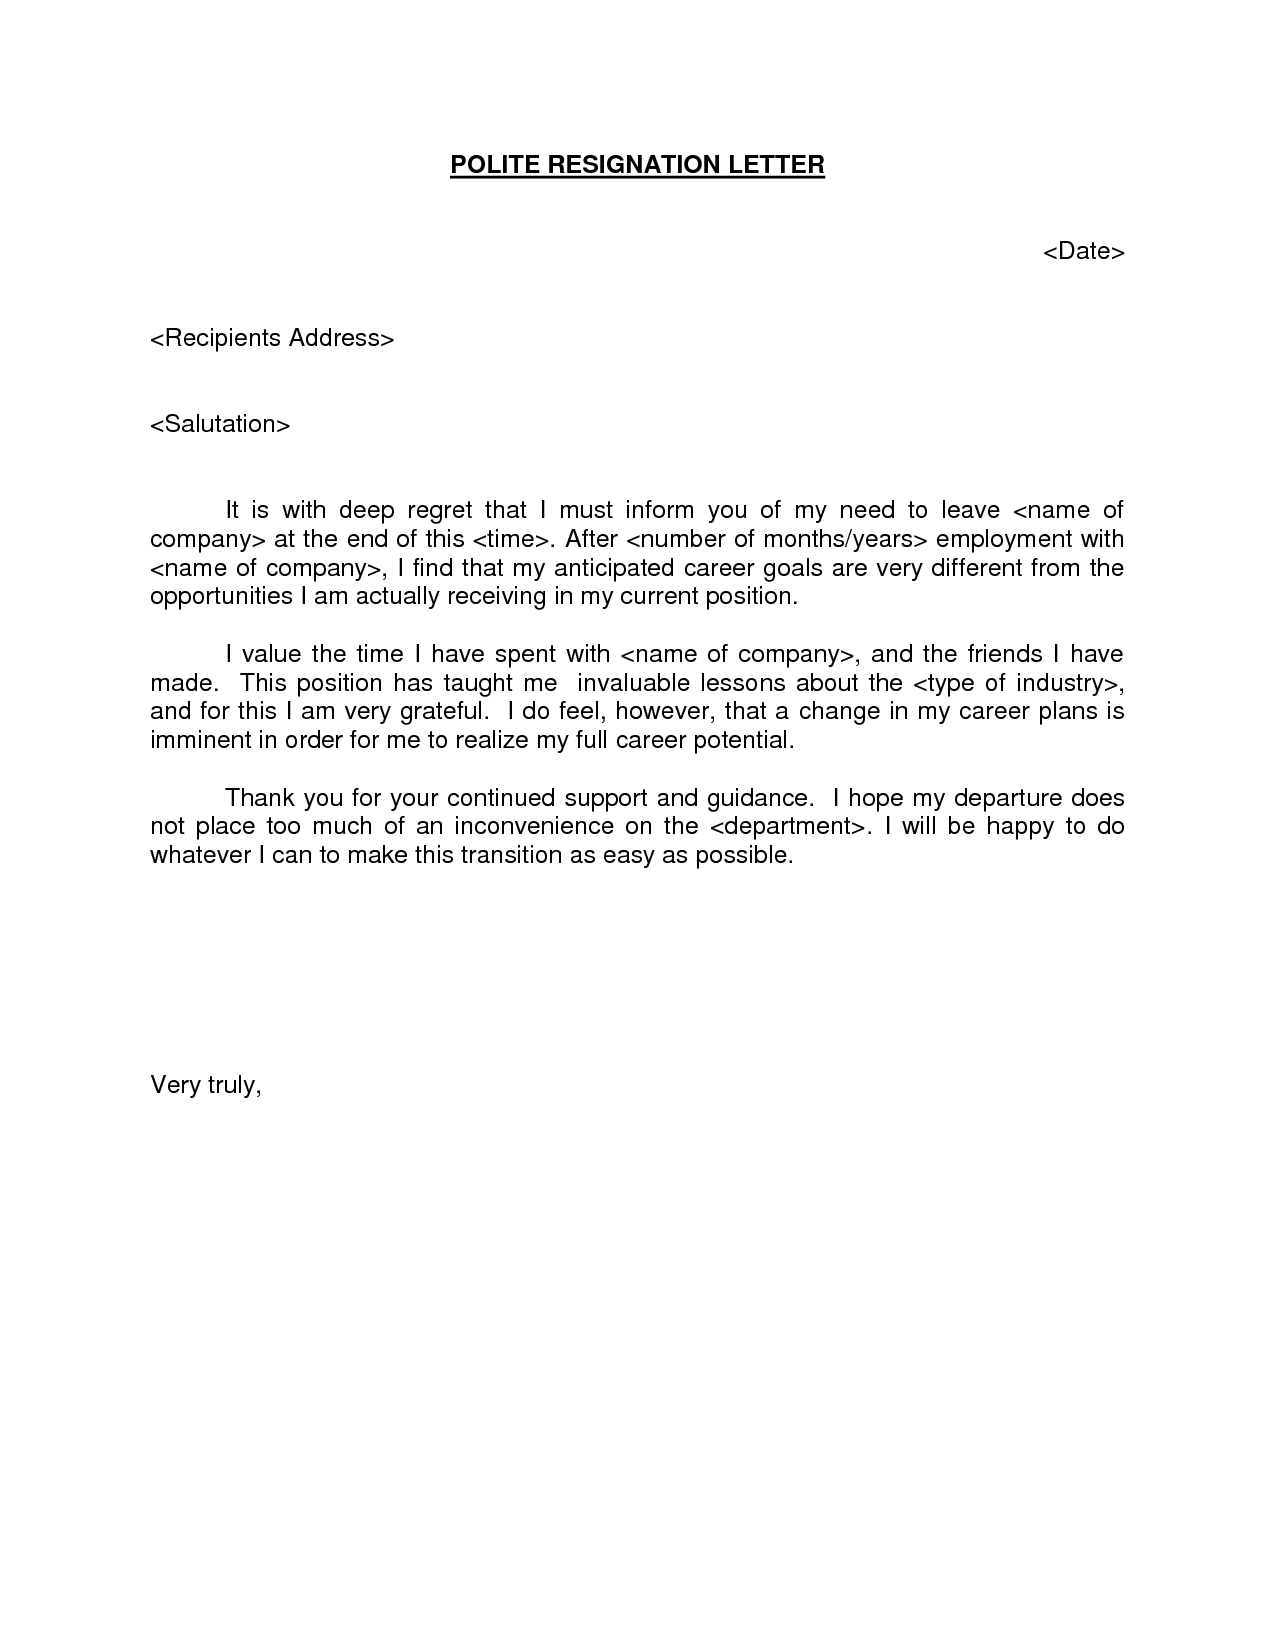 Writing A Resignation Letter Template - Polite Resignation Letter Bestdealformoneywriting A Letter